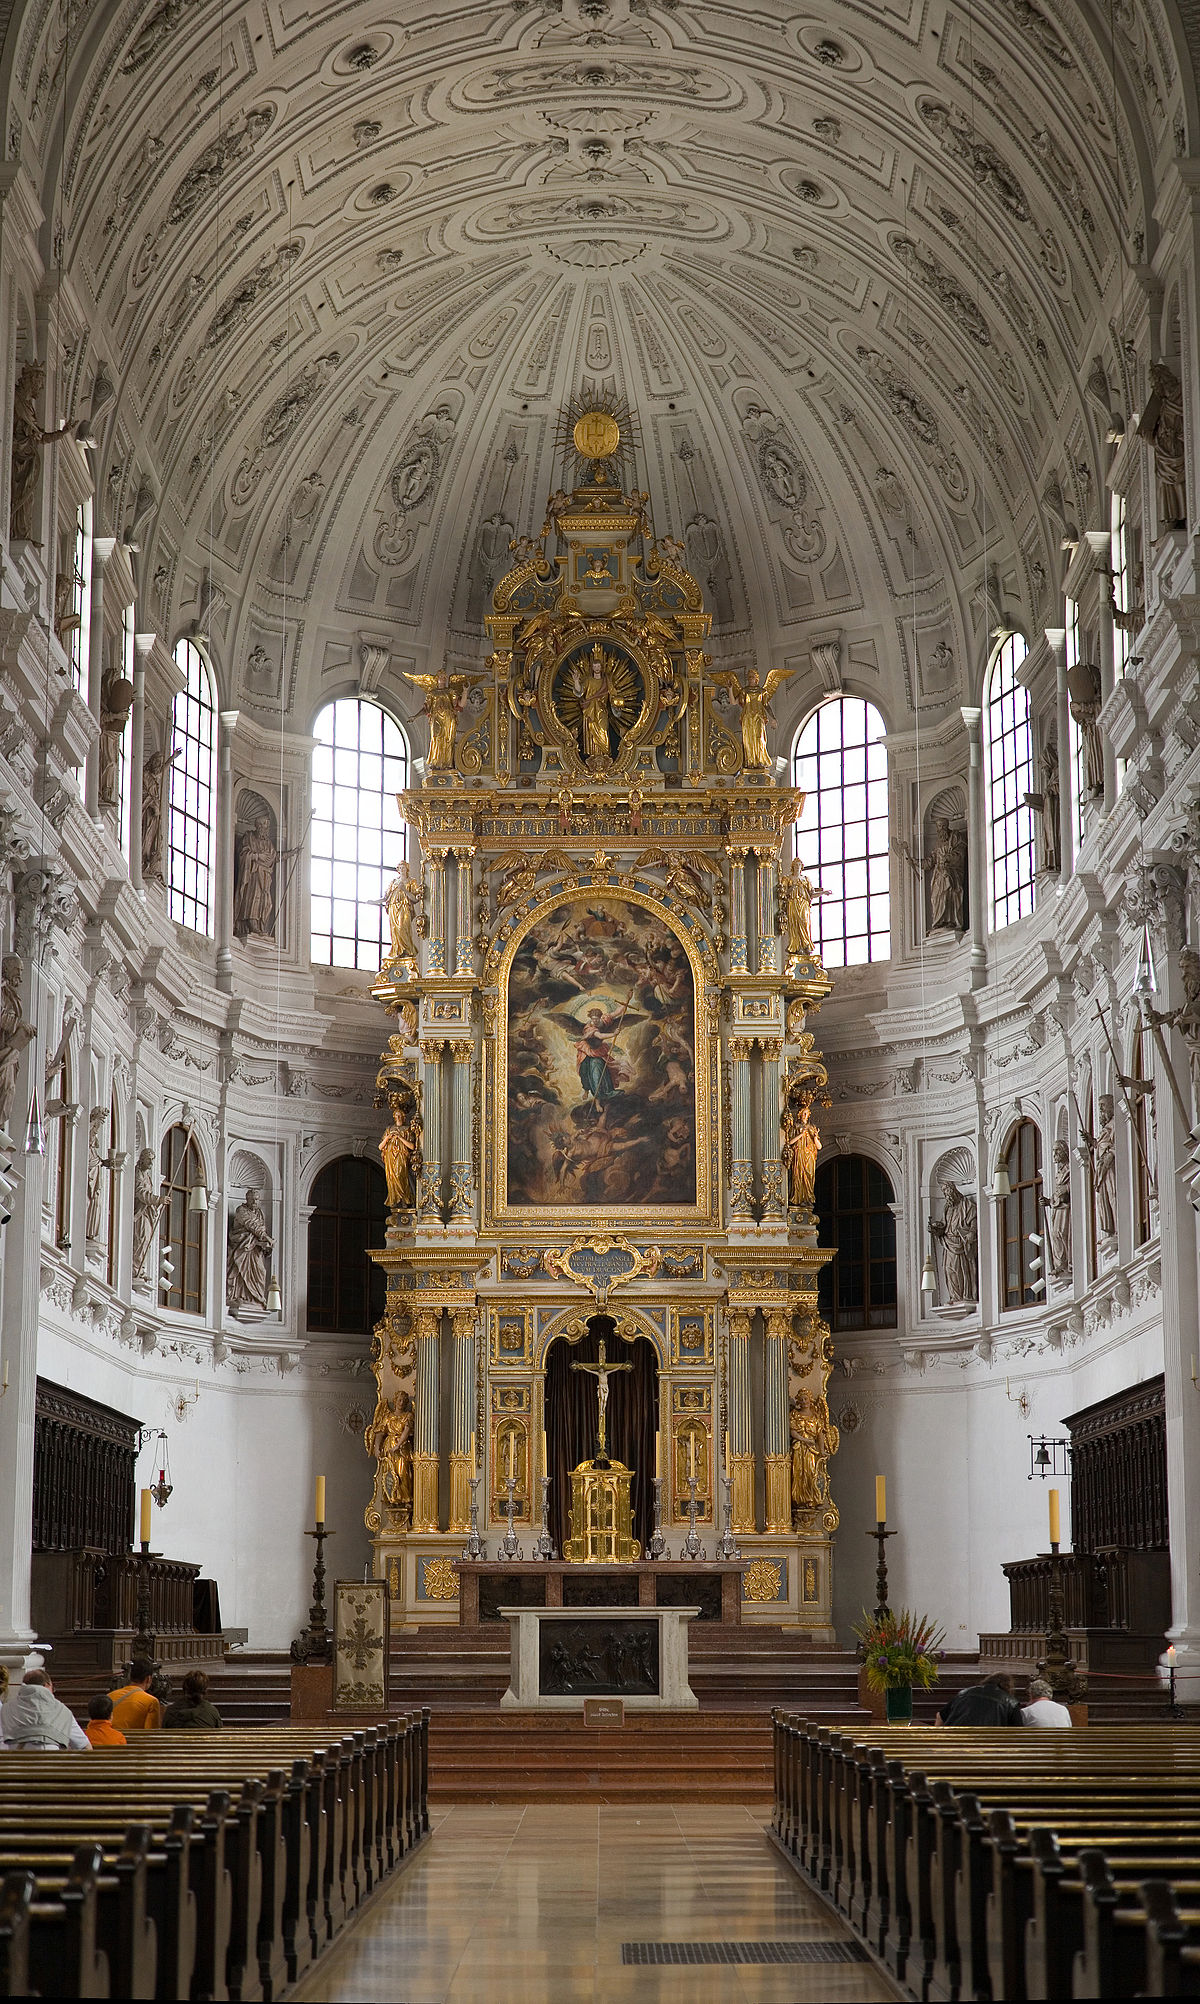 Altar in the Catholic Church - Wikipedia